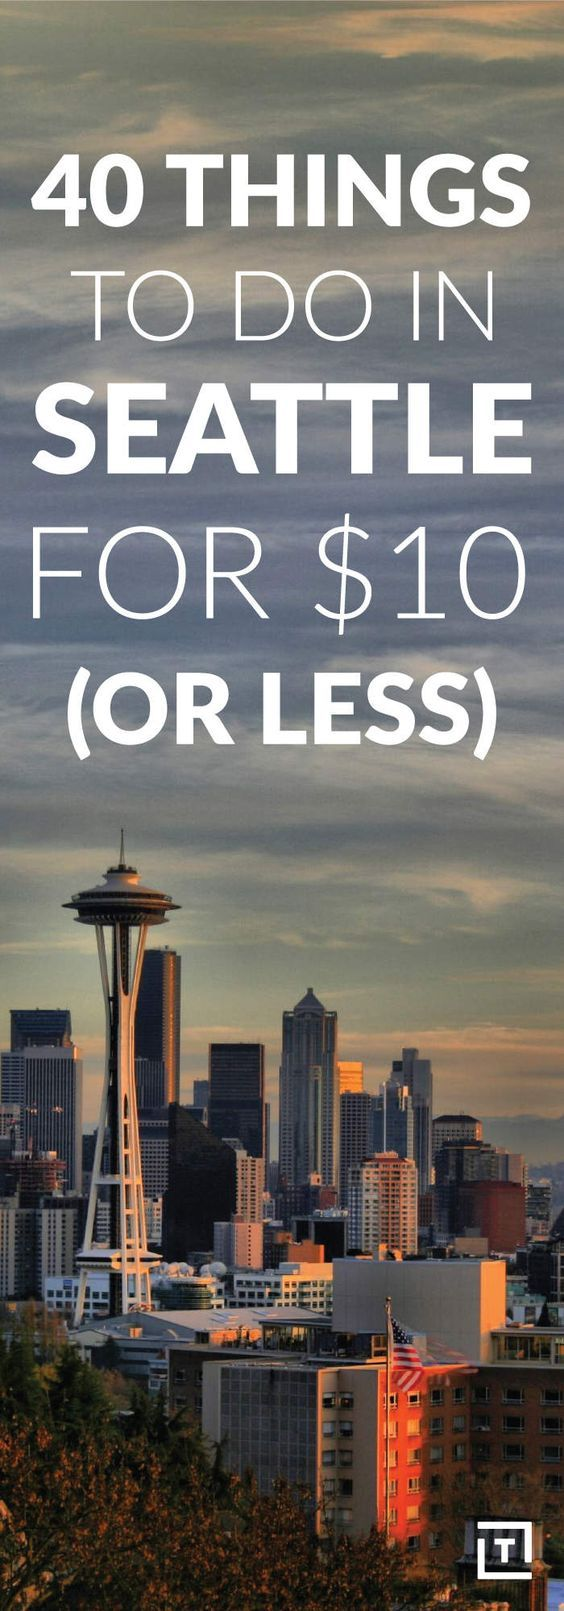 40 Things to Do in Seattle for $10 or Less